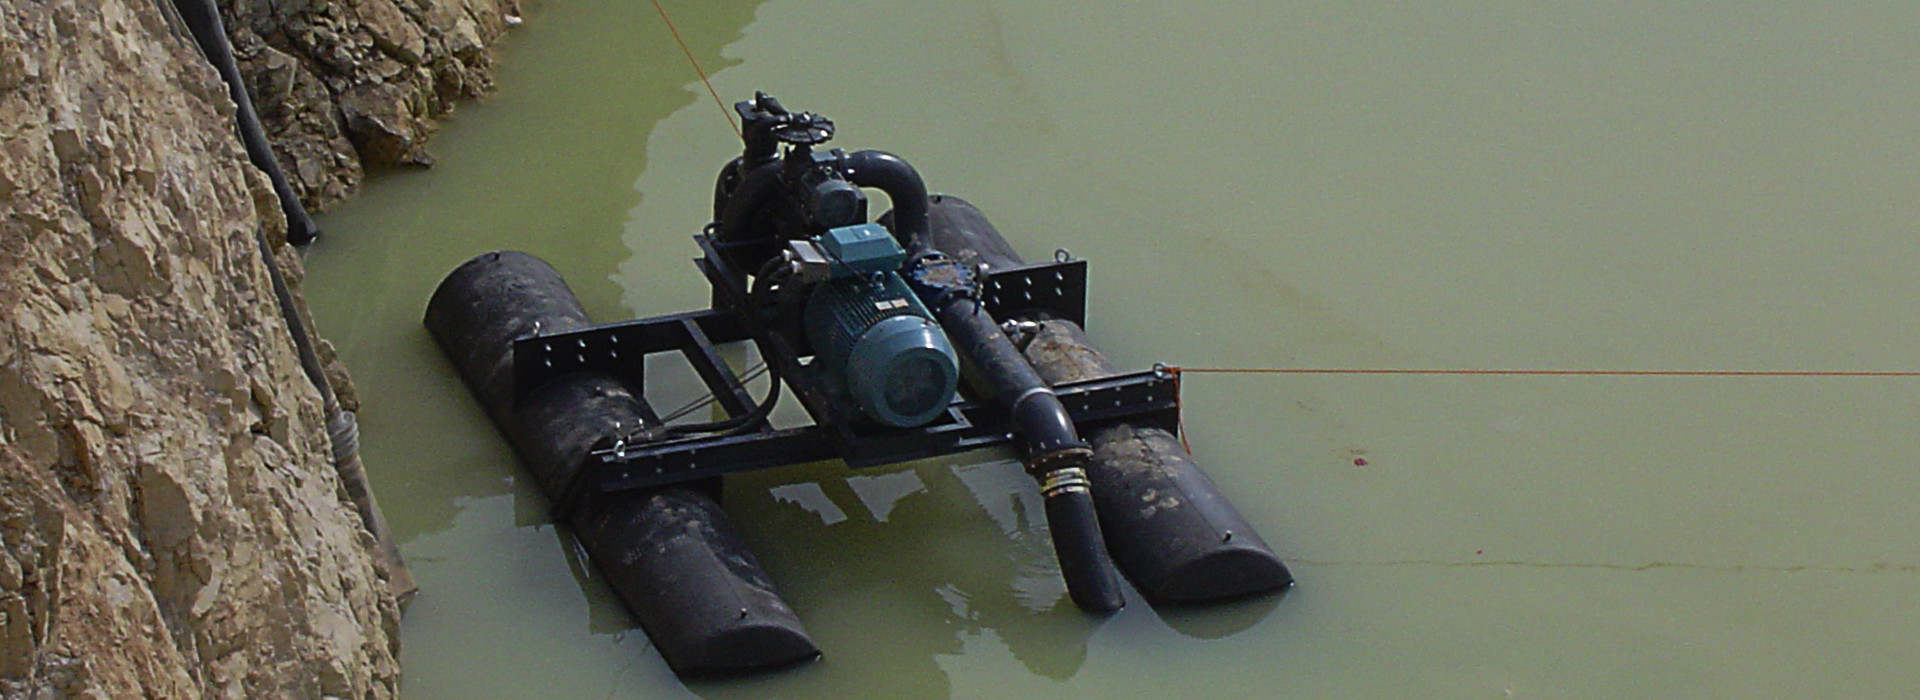 application of pumps in industry